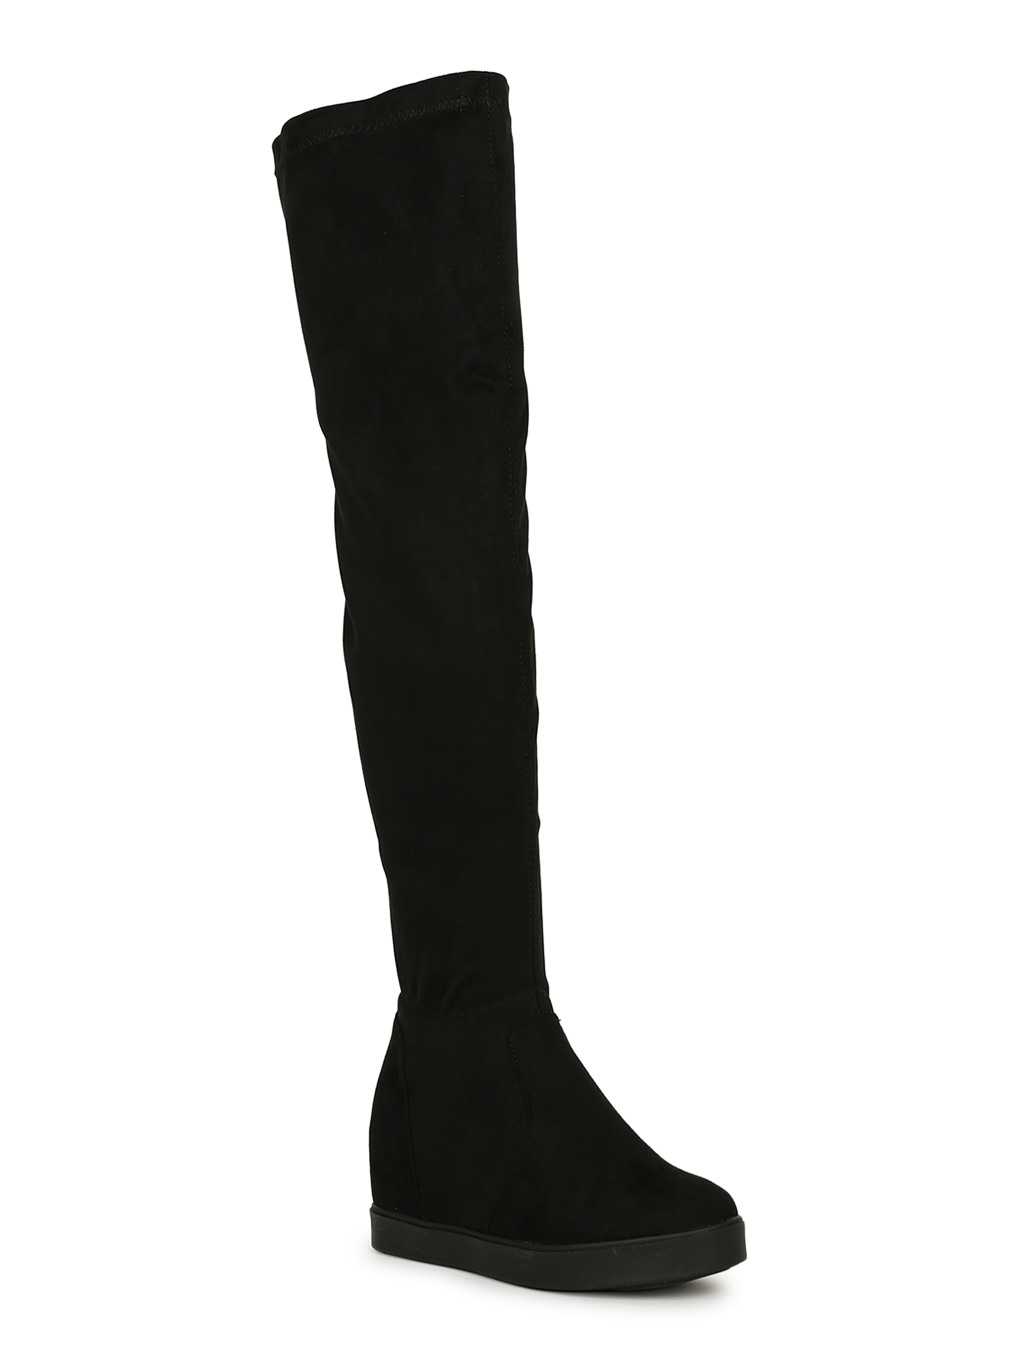 Details about  /Fashion Women Round Toe Pull on Hidden Wedge Heels Over The Knee Boots Shoes sz